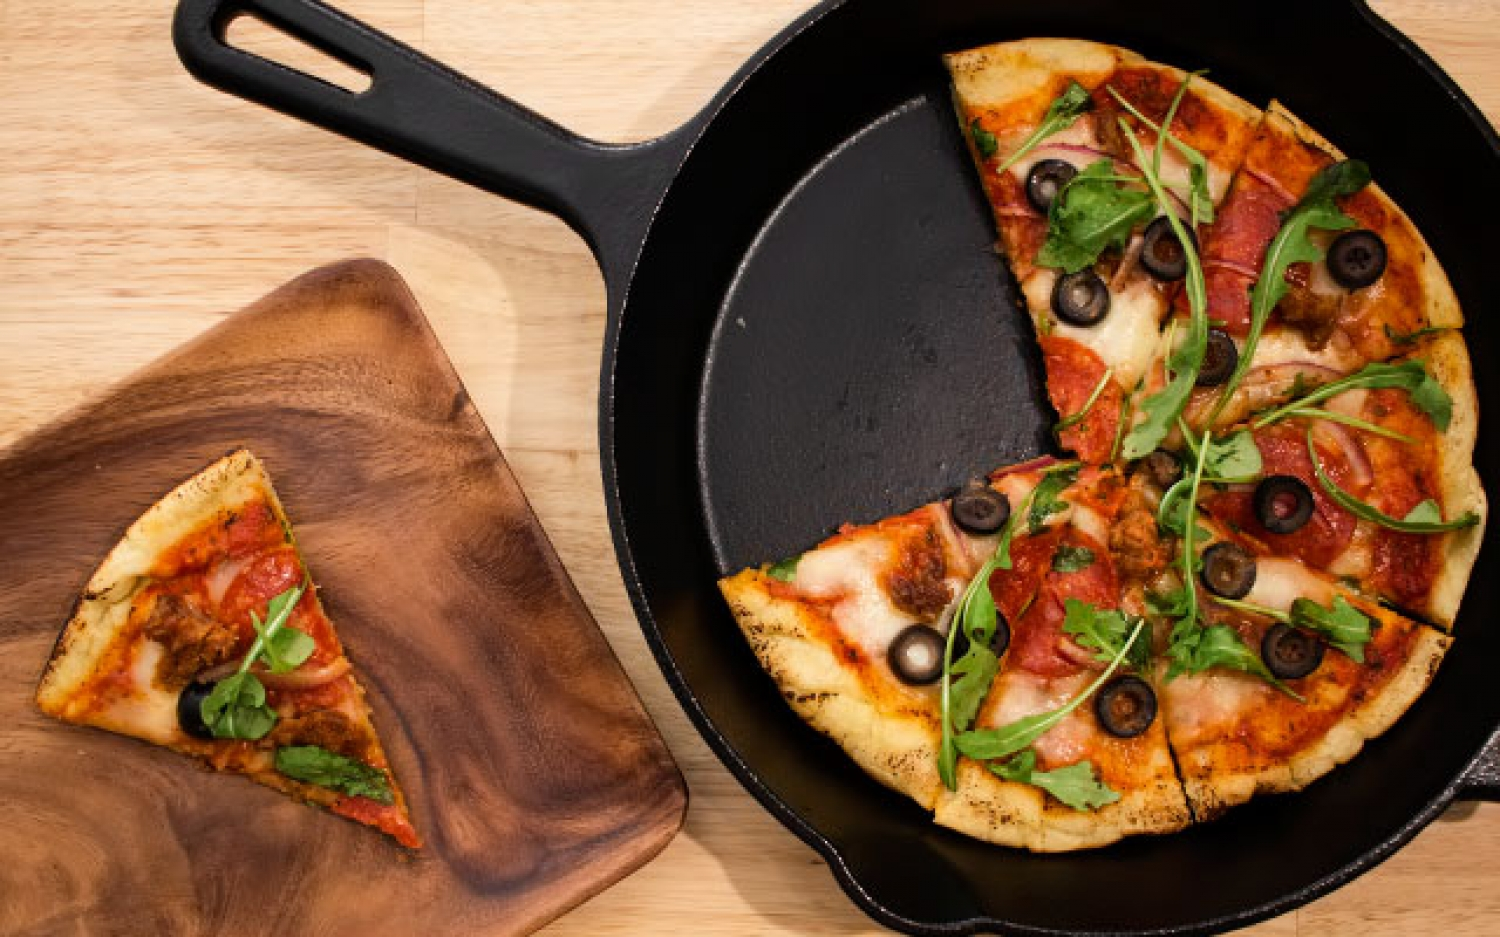 Pizza in the frying pan - foto 1594